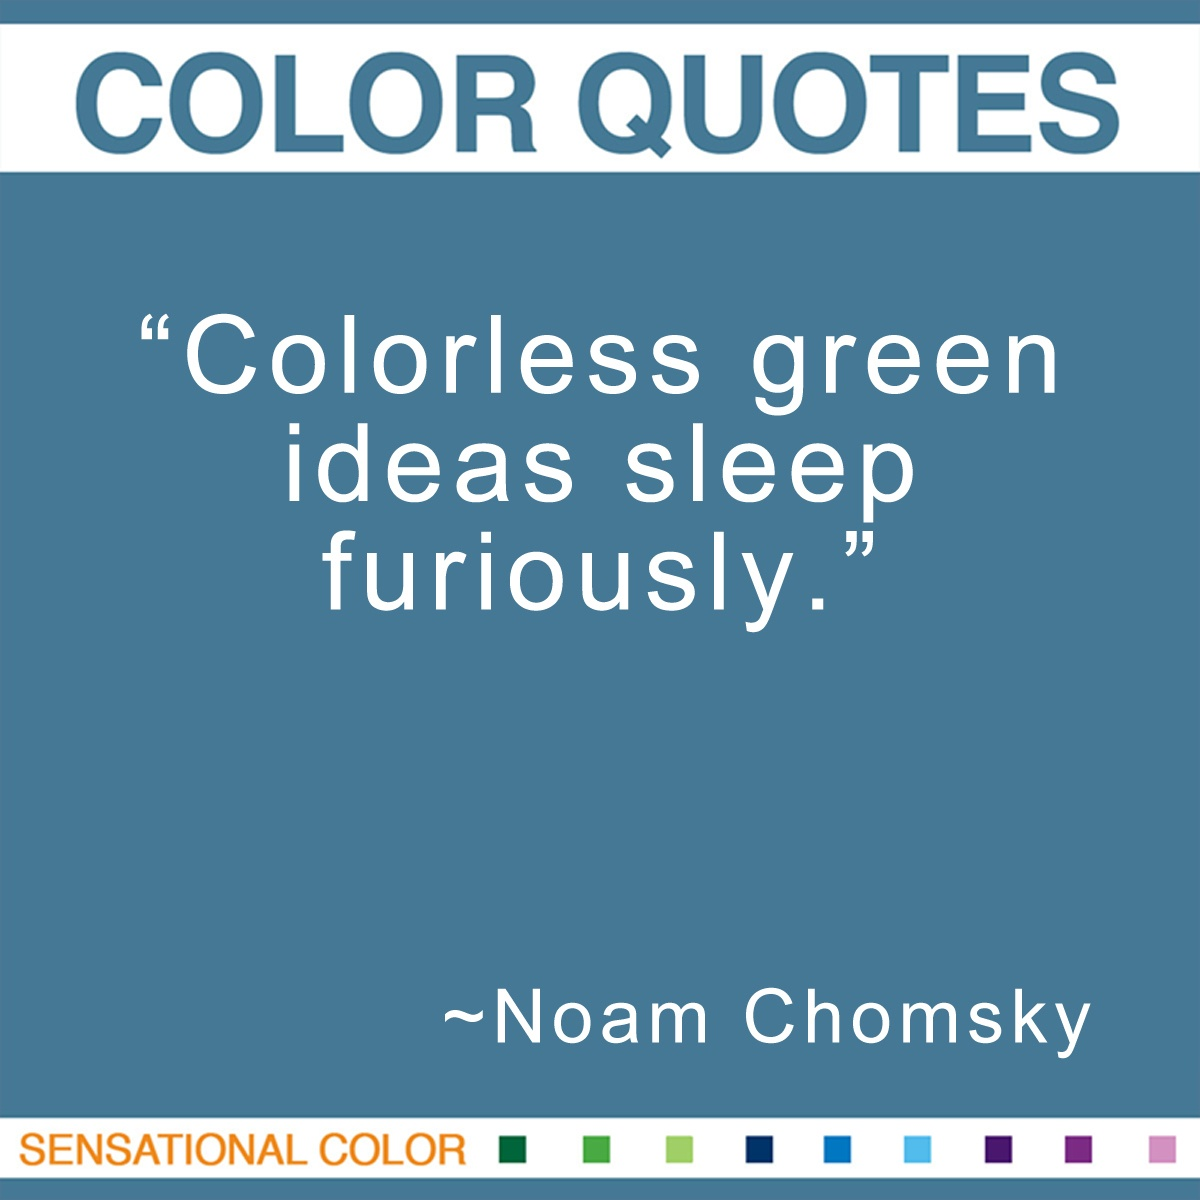 """Colorless green ideas sleep furiously."" -  Noam Chomsky"